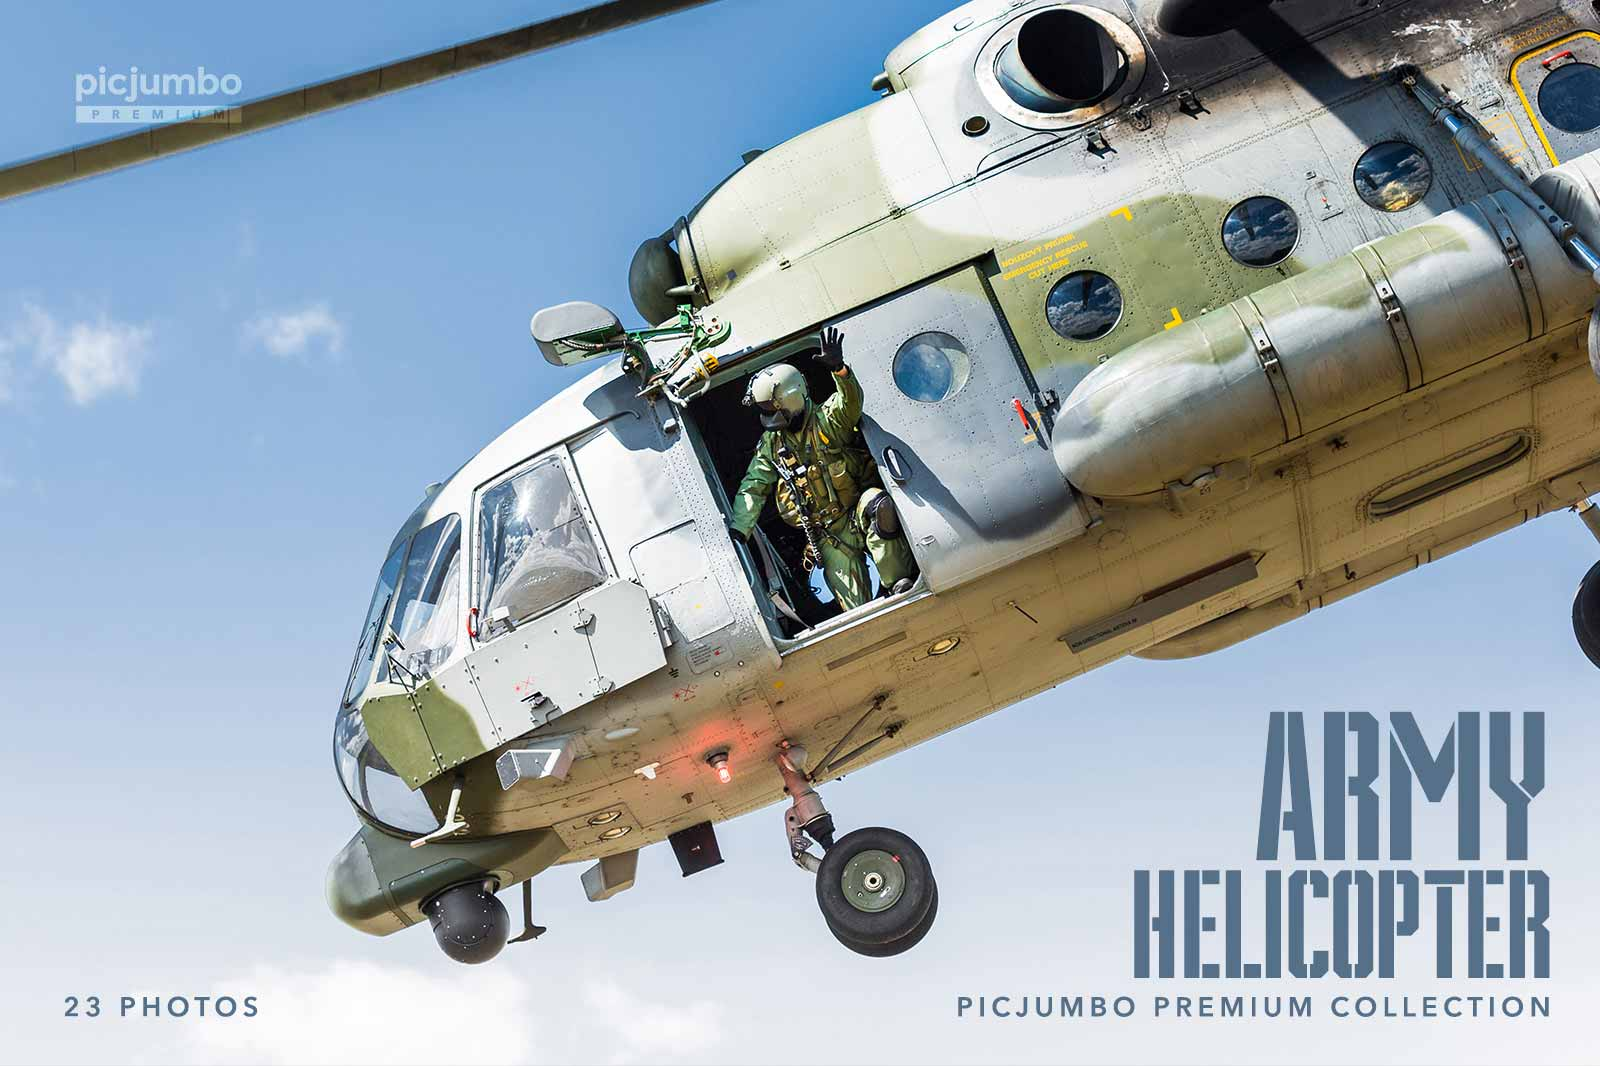 army-helicopter-picjumbo-premium-collect